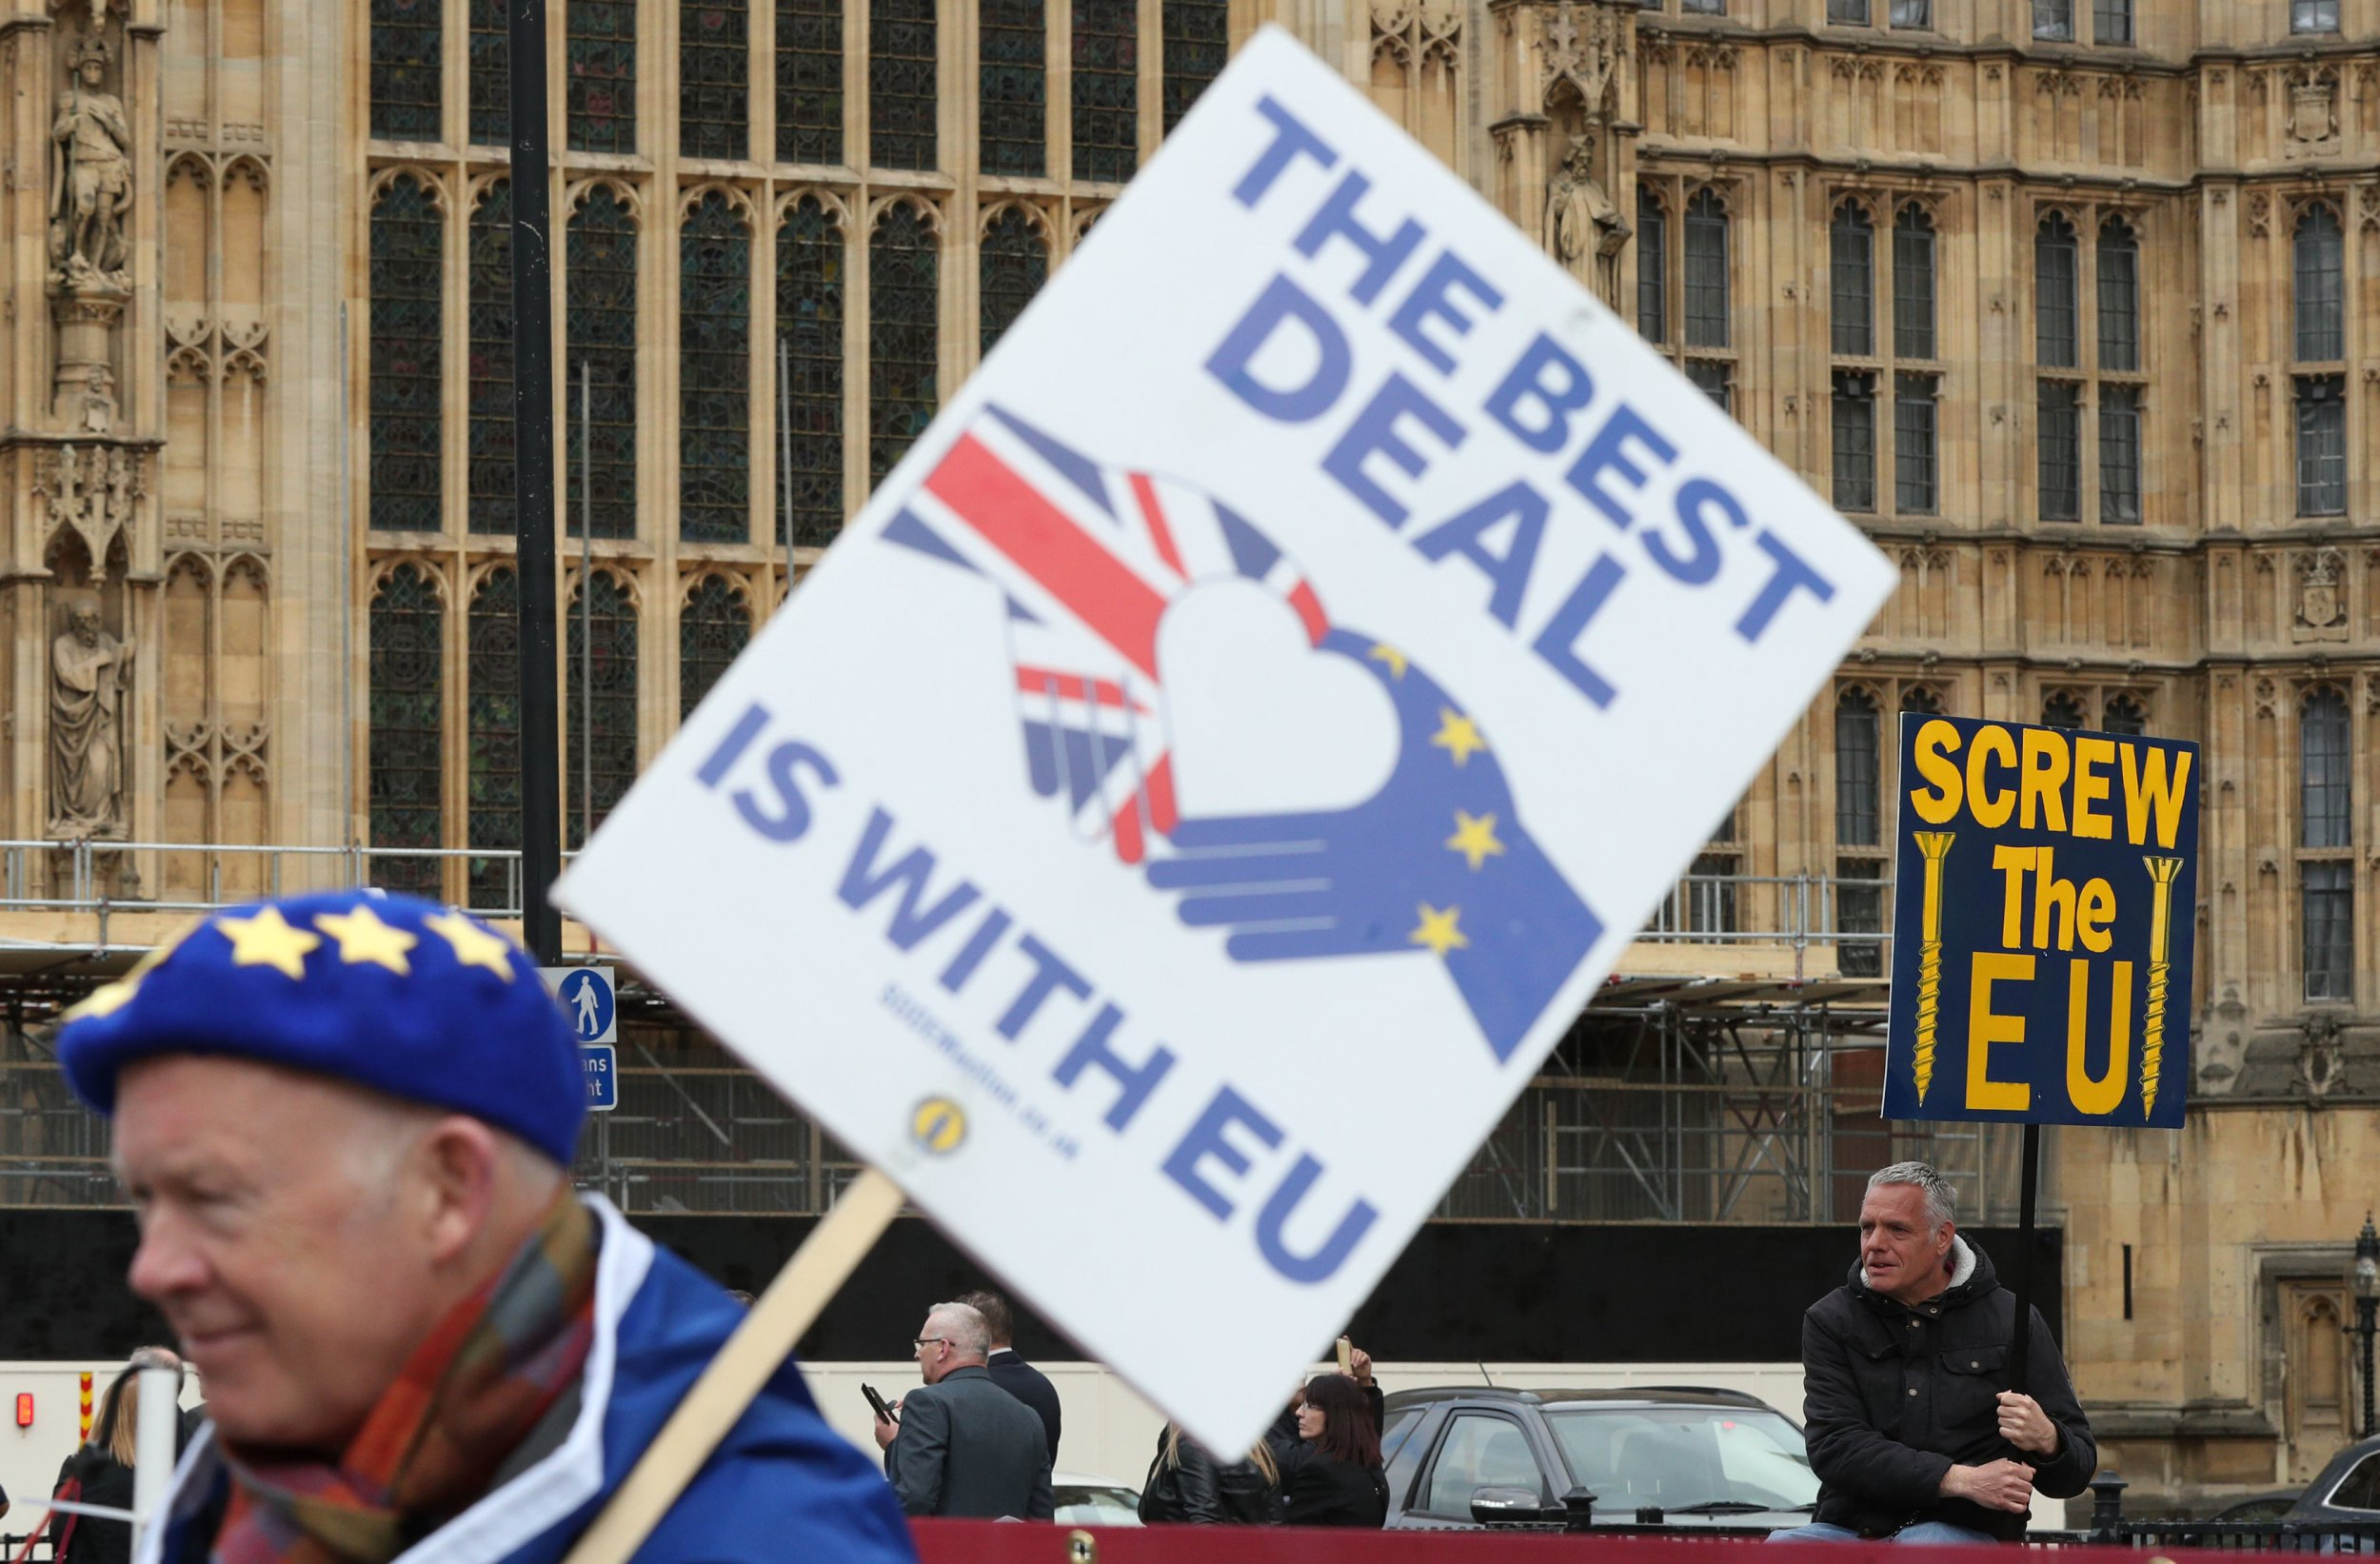 MPs reject second referendum and all other Brexit options including no Brexit